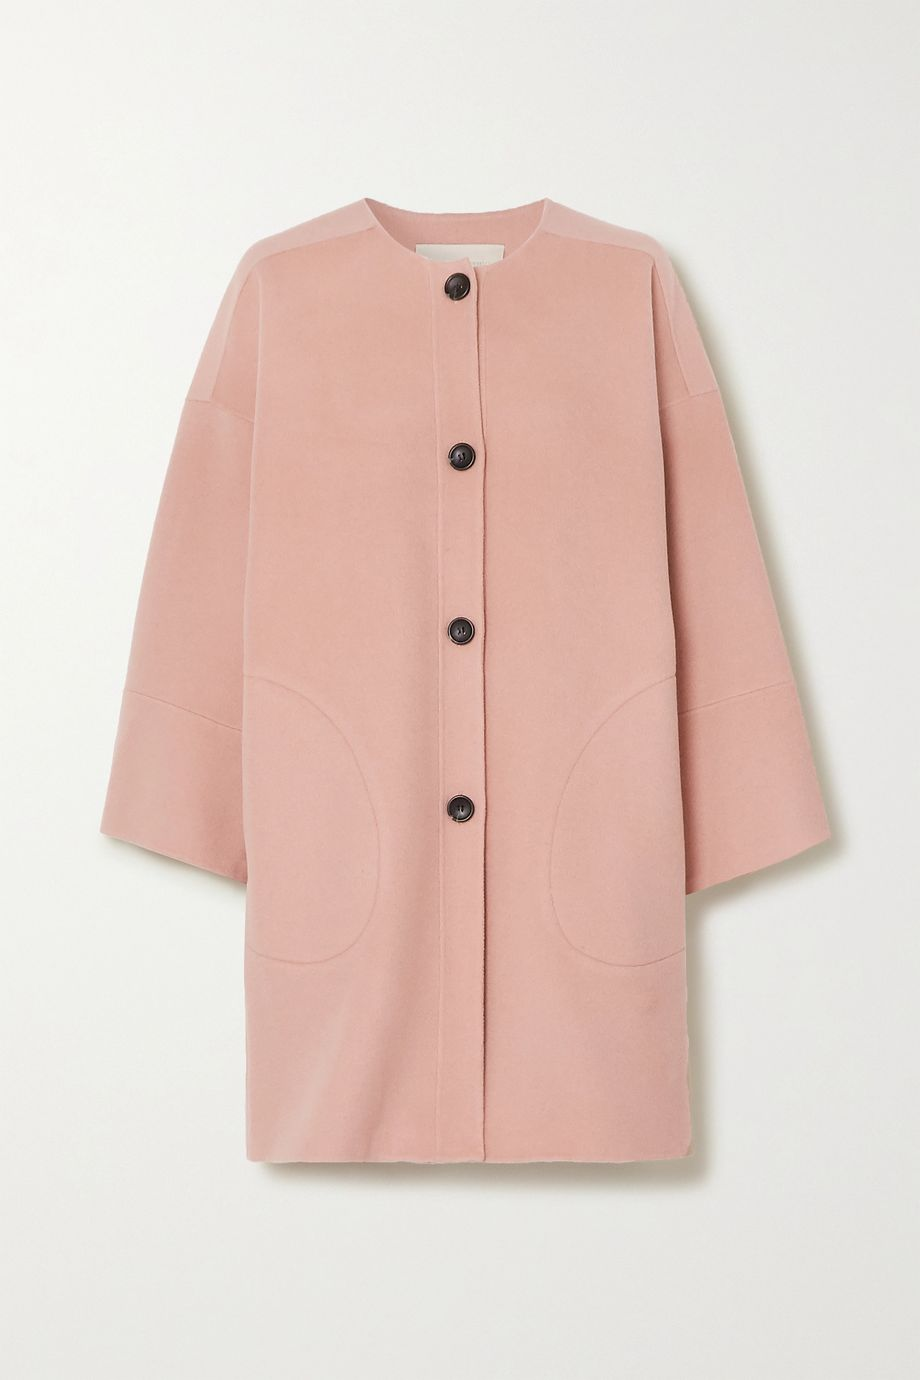 Vanessa Bruno Nash wool and cashmere-blend felt coat